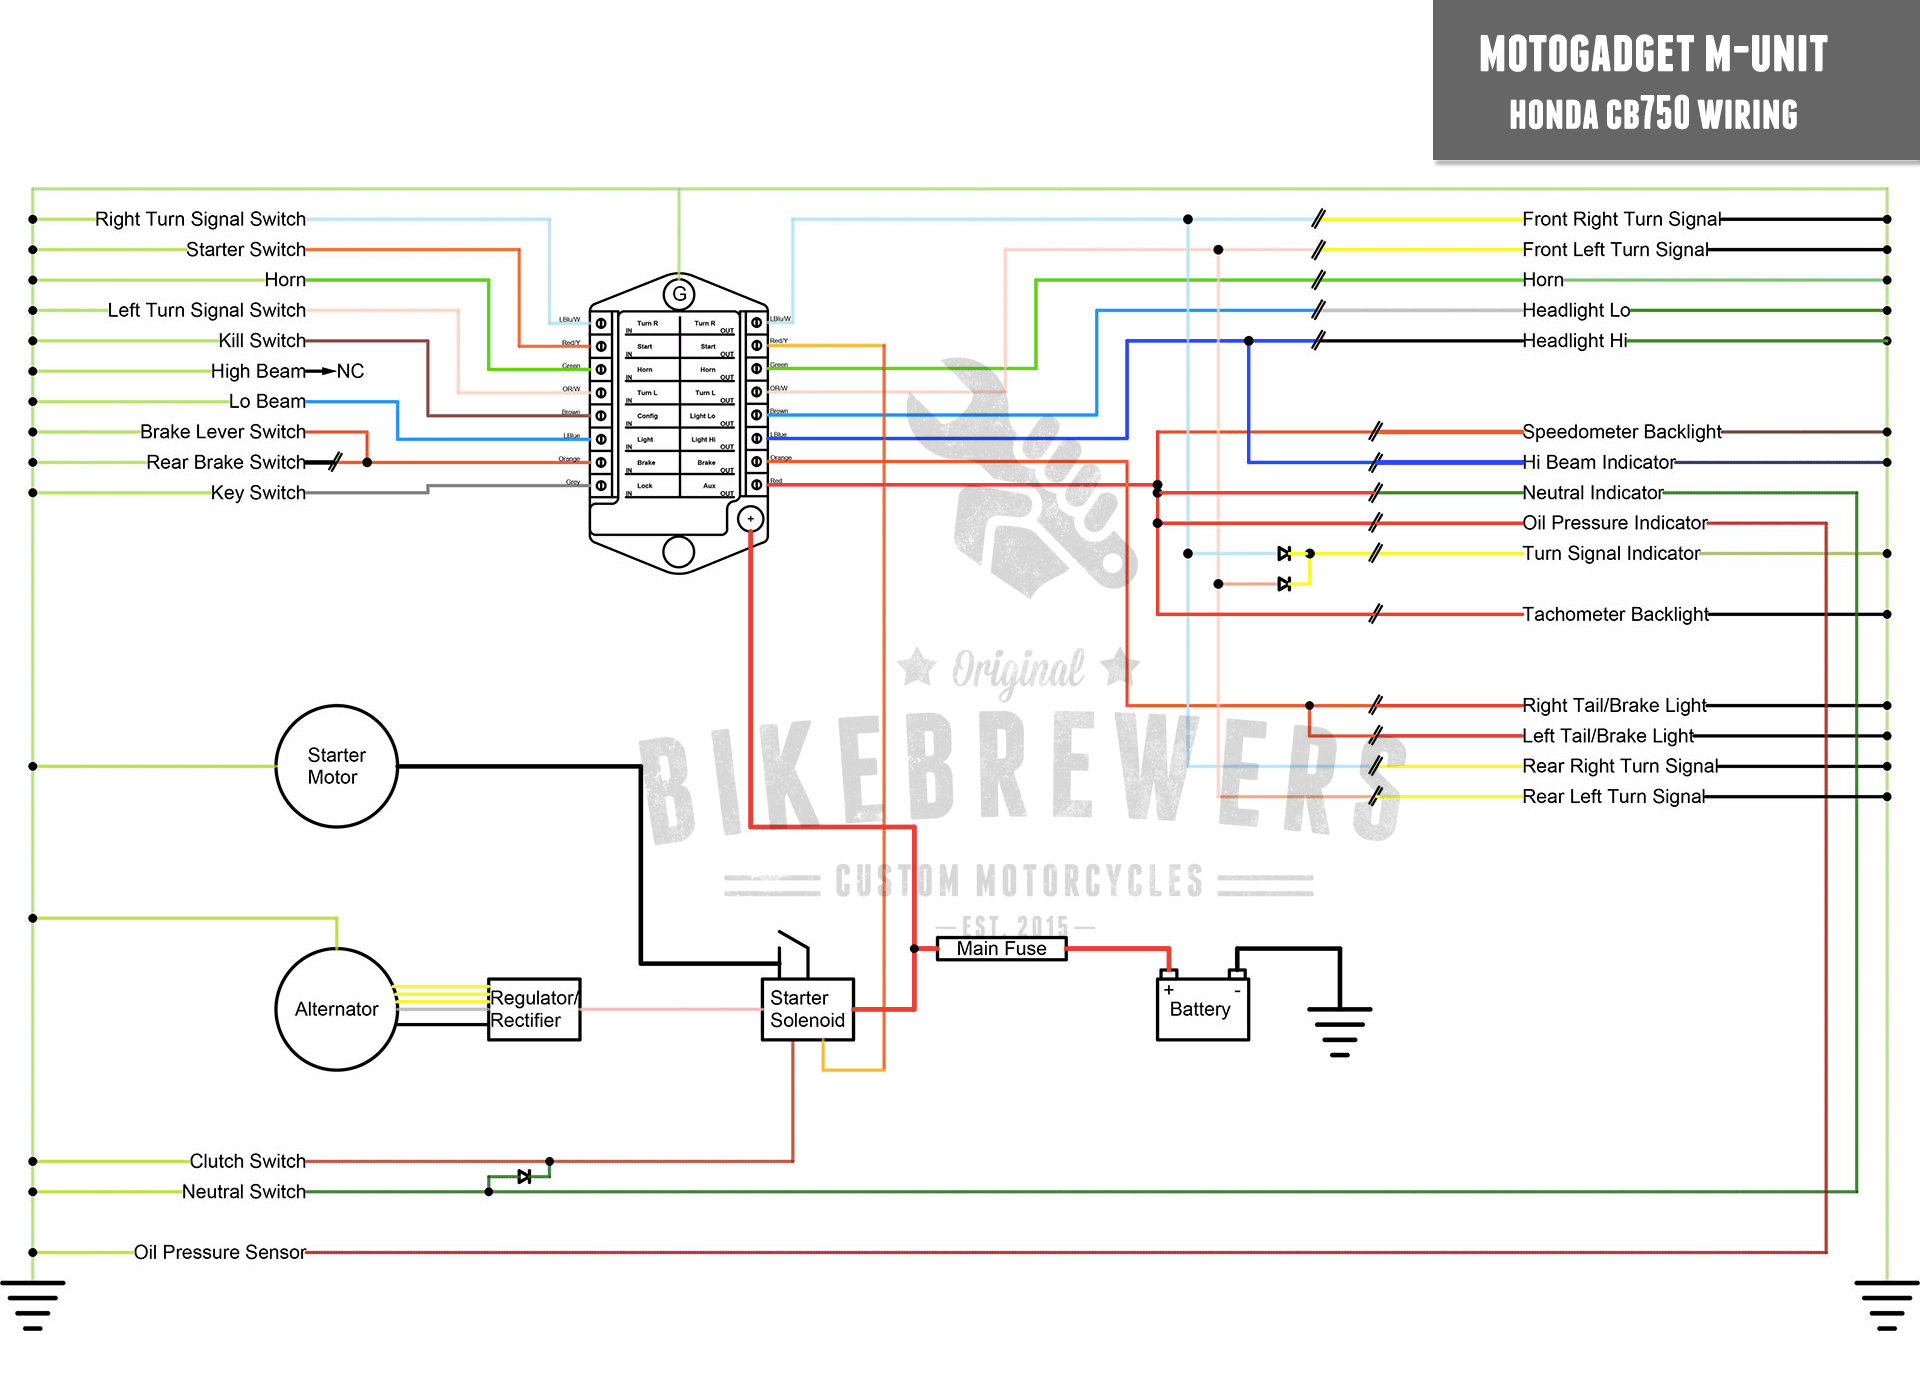 MotoGadget Wiring Honda CB750 motogadget m unit wiring bikebrewers com wiring diagram for motorcycle turn signals at n-0.co